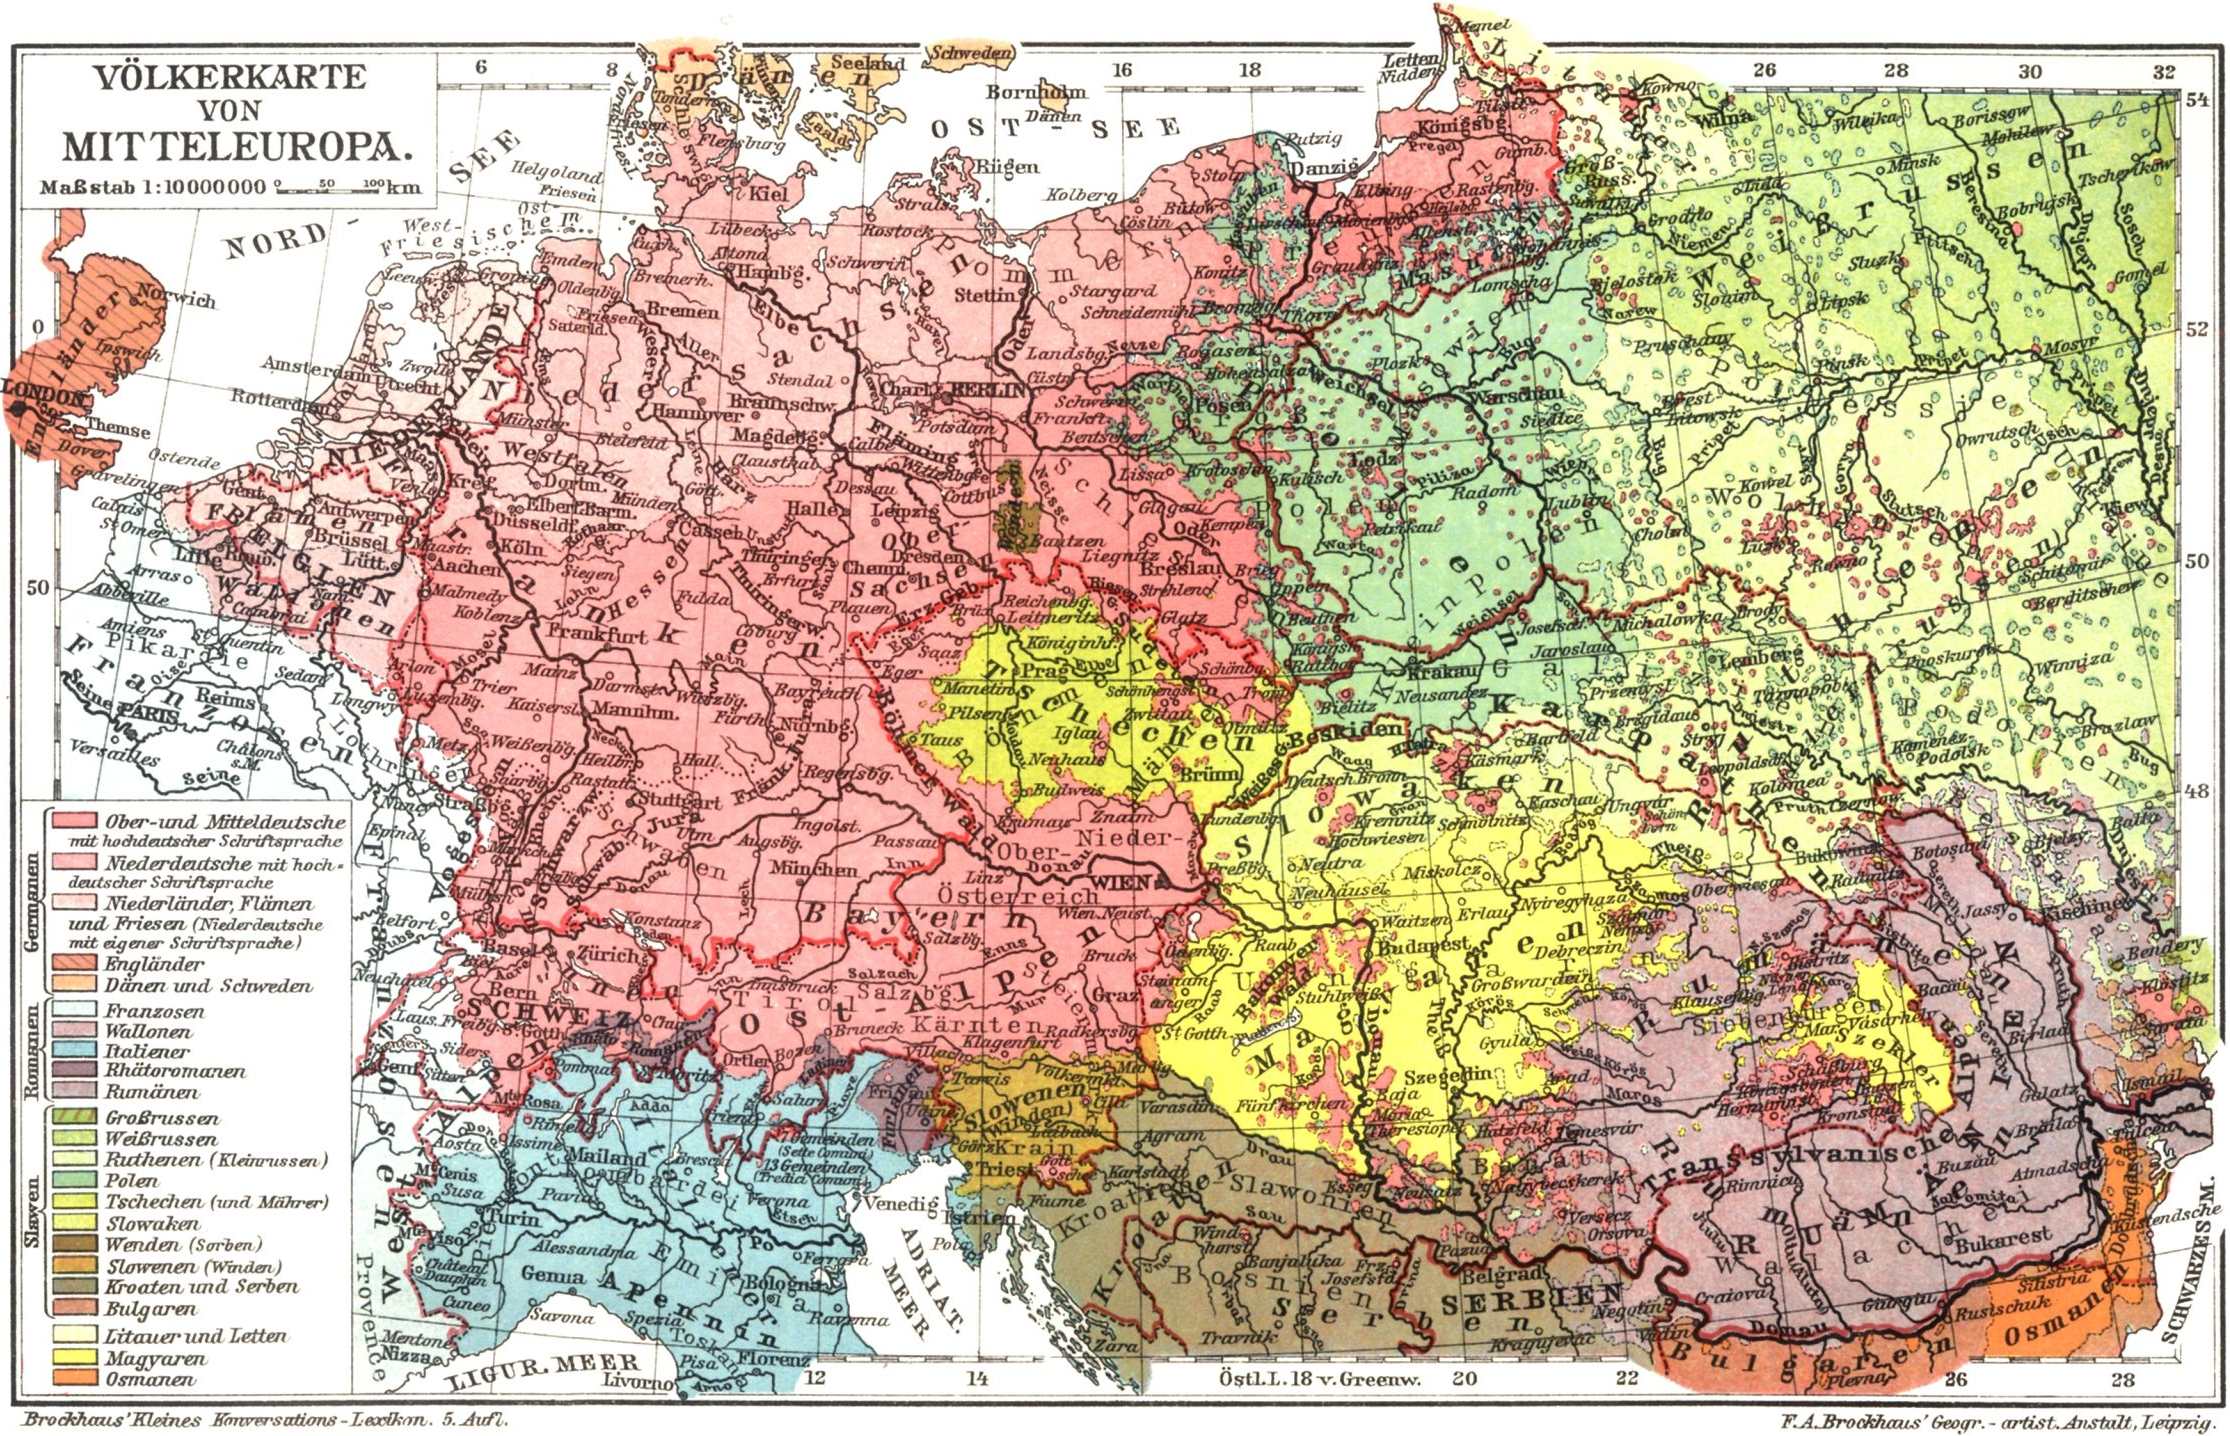 Central Europe: From Belle Epoque to Bloodlands | University of St Andrews